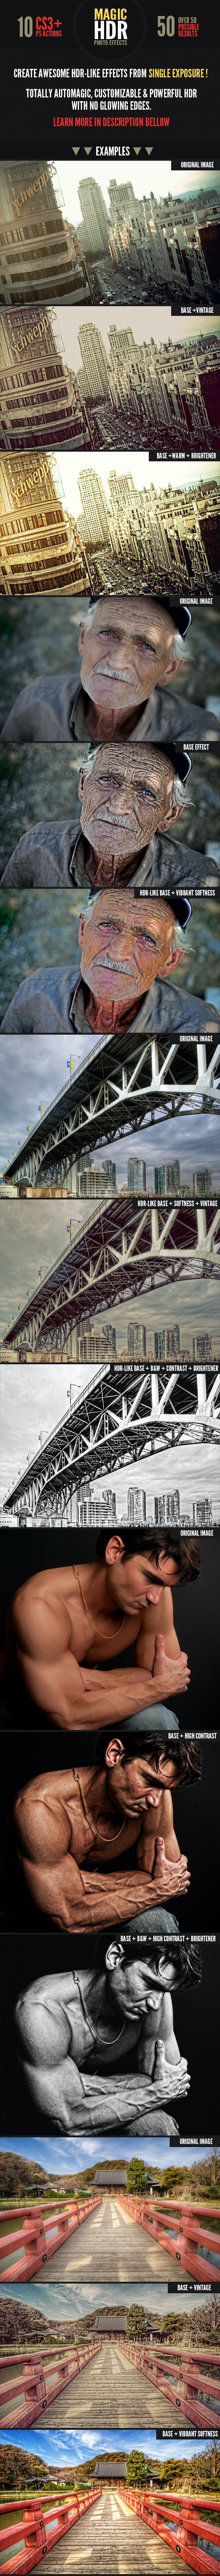 Magic HDR Photohosp Actions - Photo Effects Actions